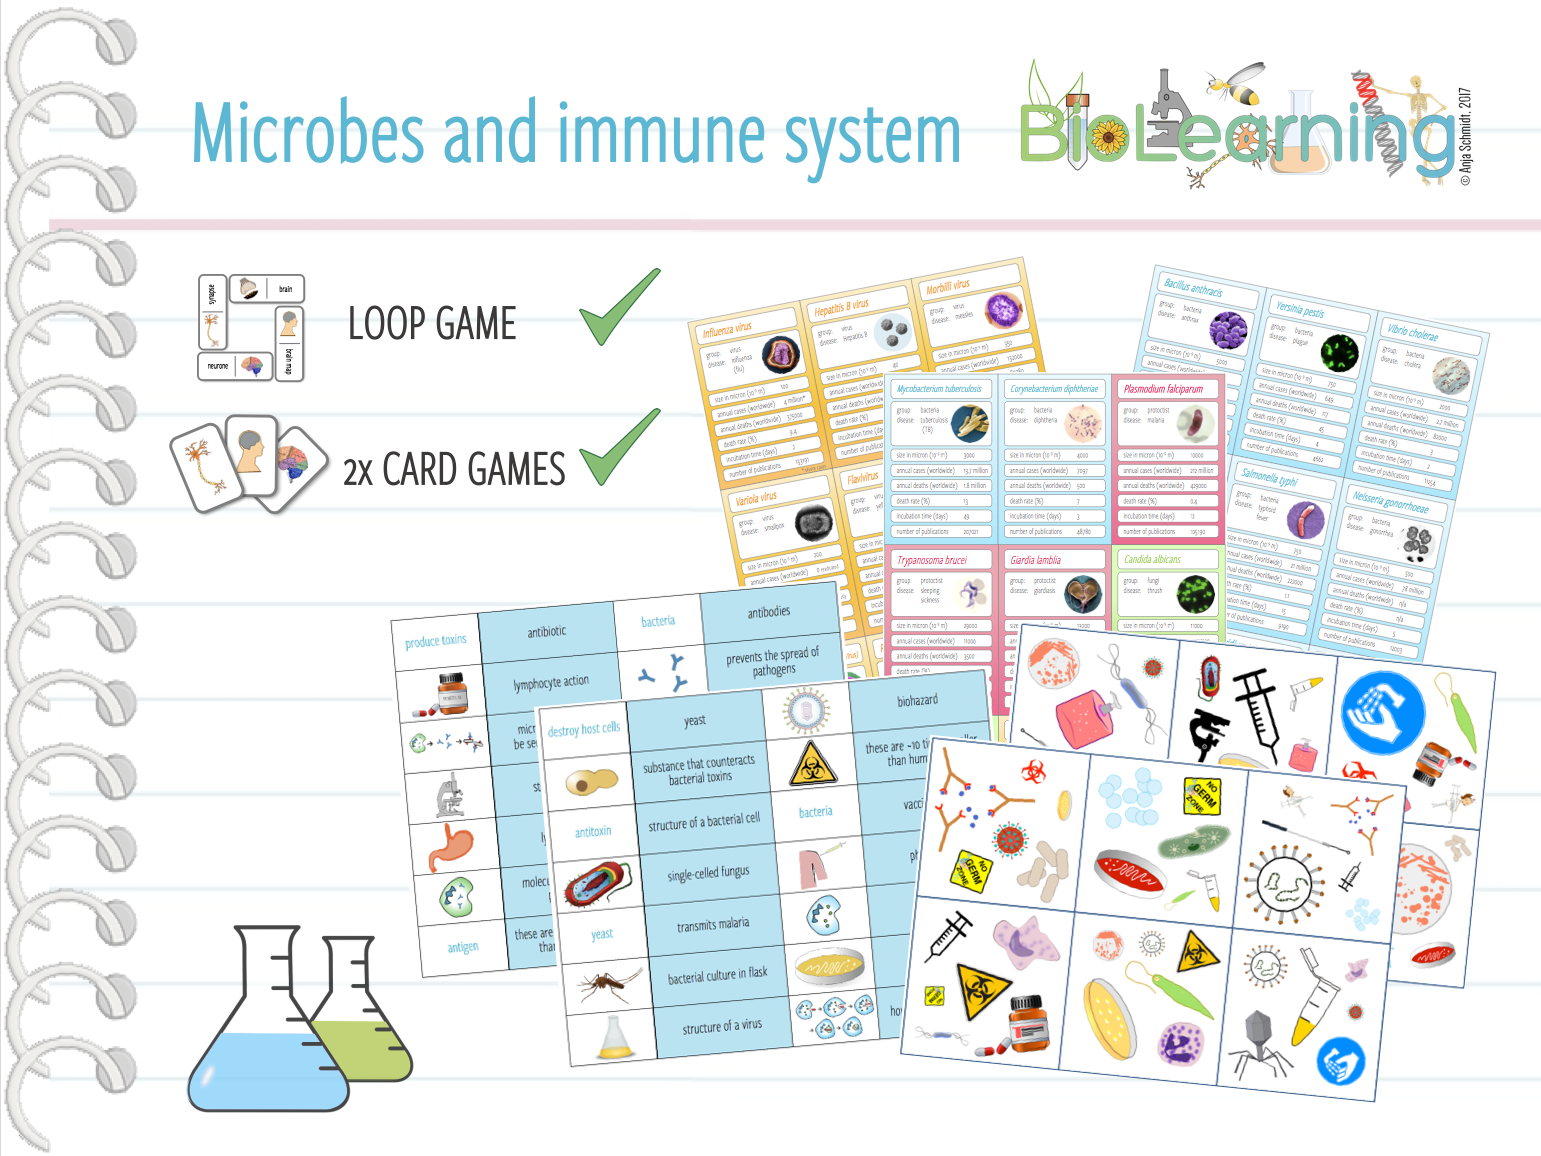 Microbes, pathogens and immune system - 3x Games